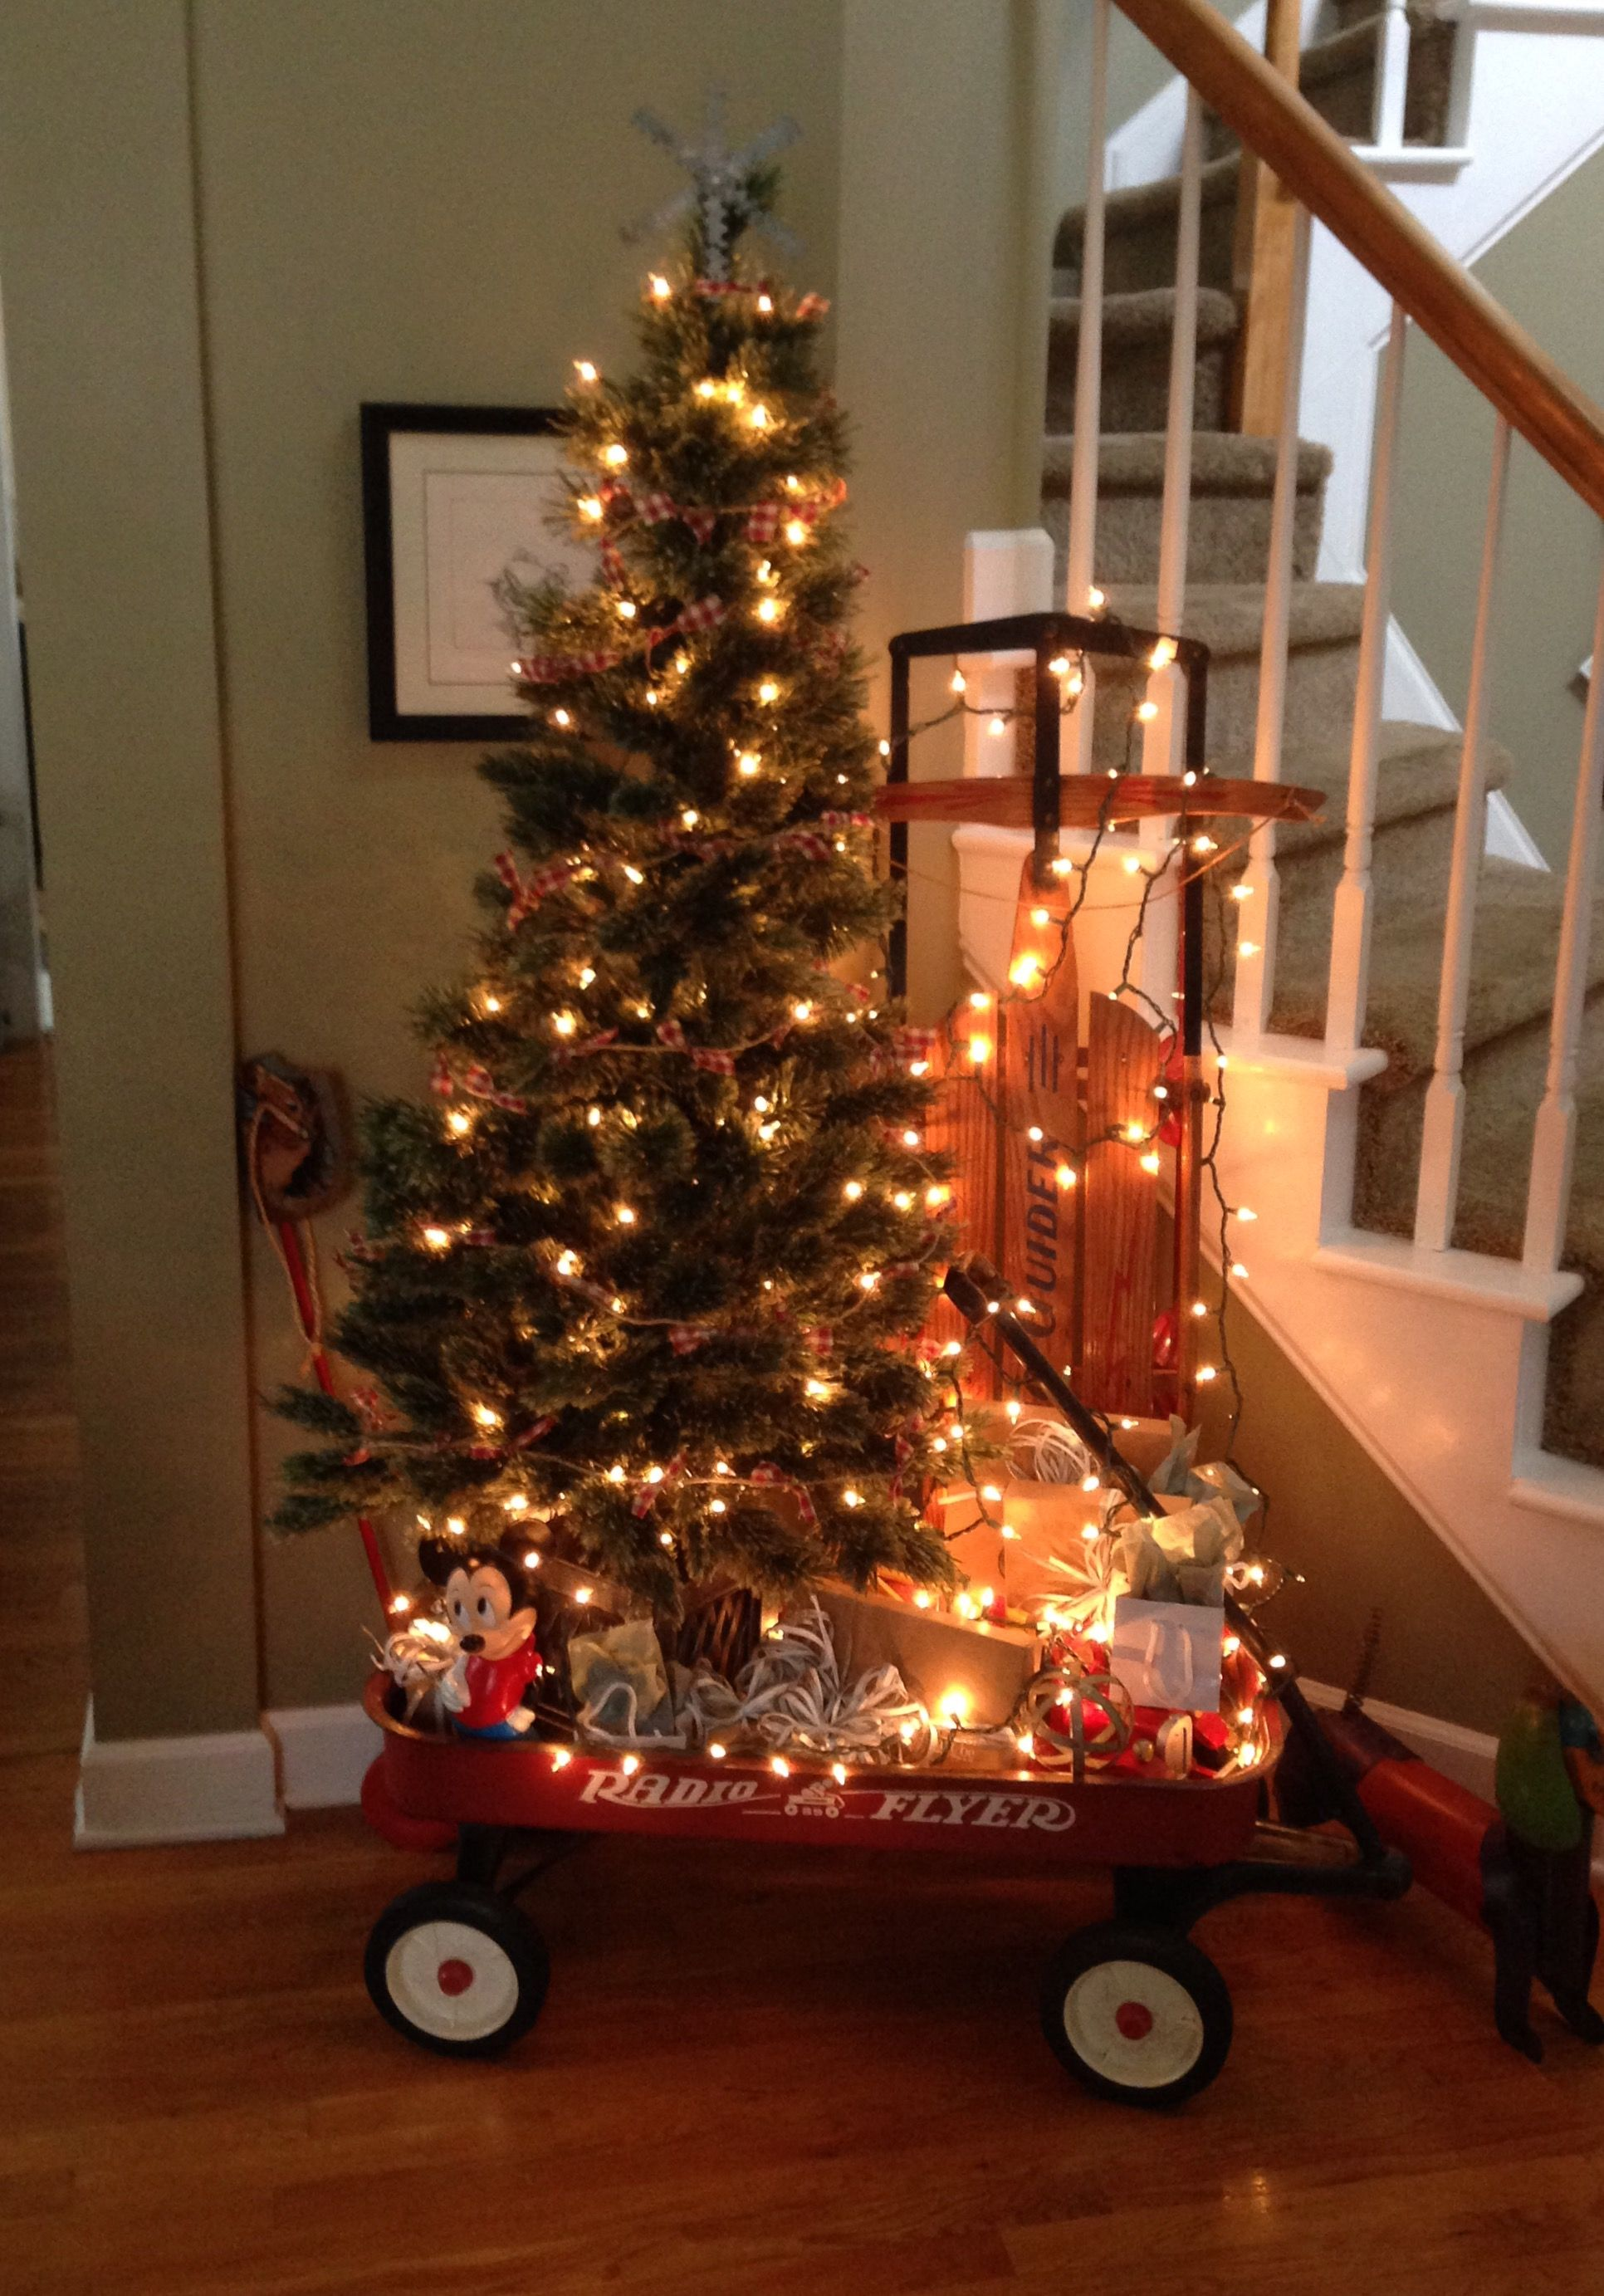 Our Christmas tree in a Radio Flyer wagon with my hubby's